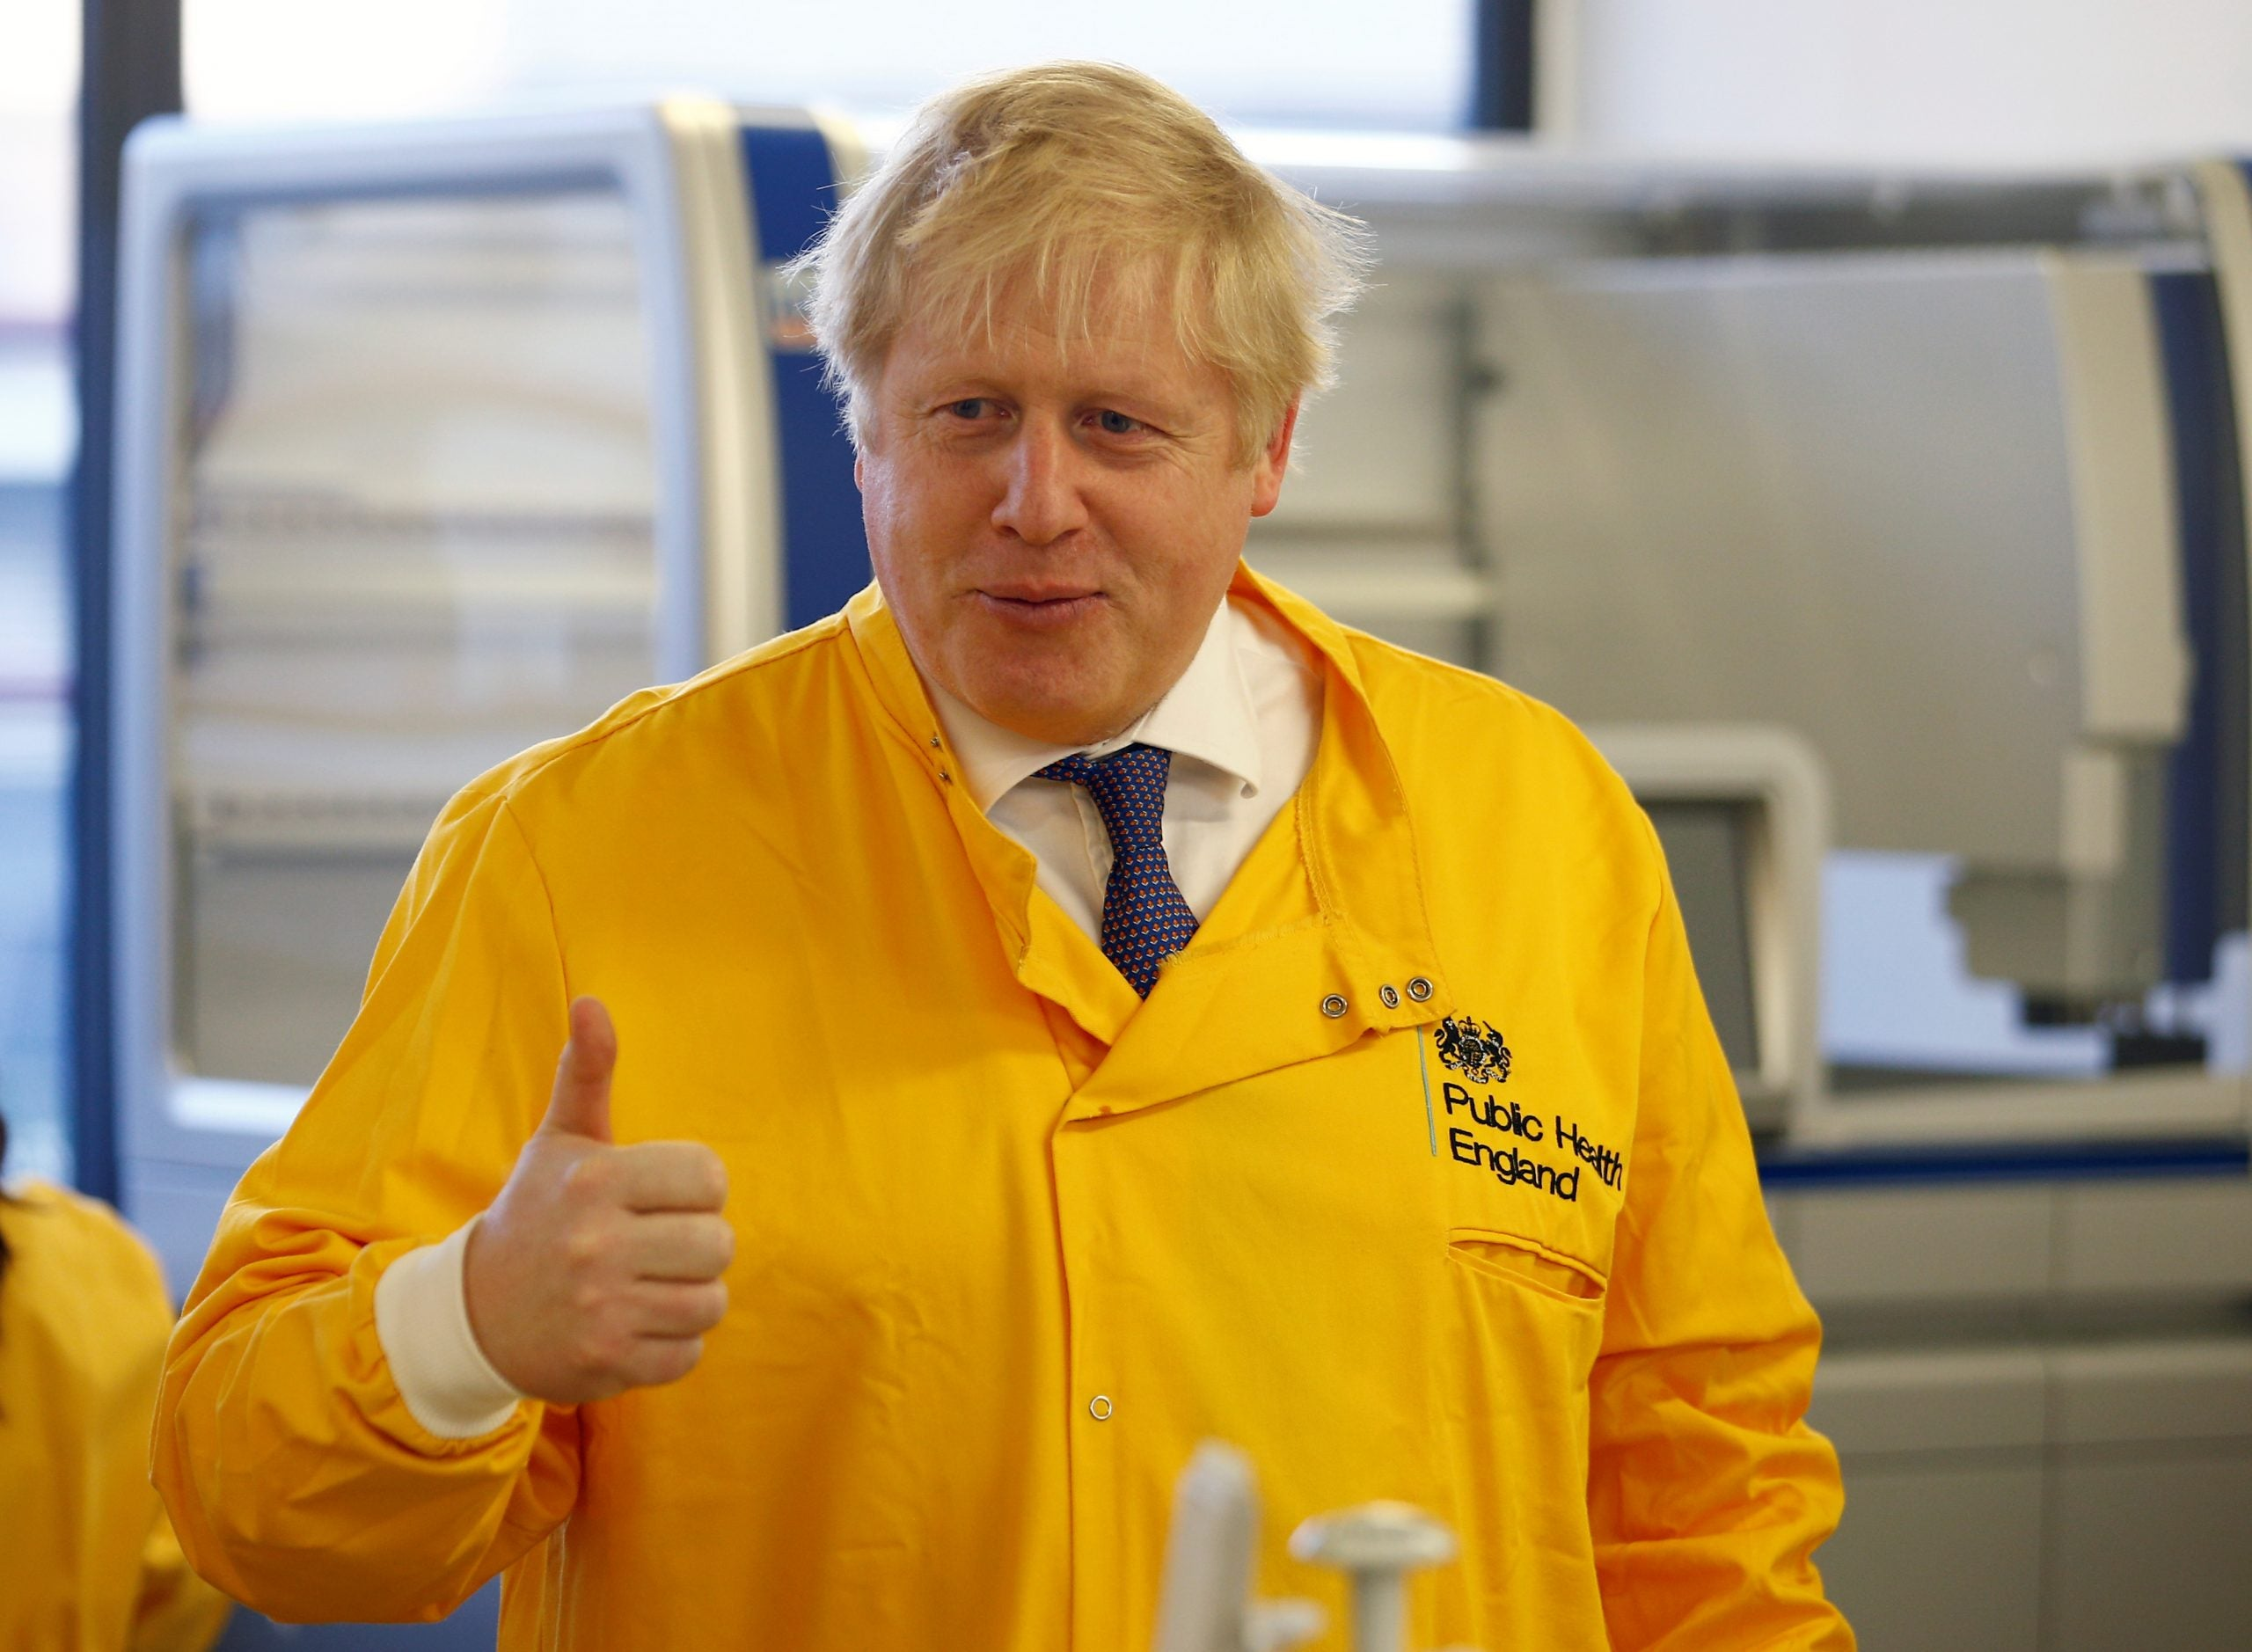 The Covid-19 epidemic could be laboratory-designed to test Boris Johnson's leadership style